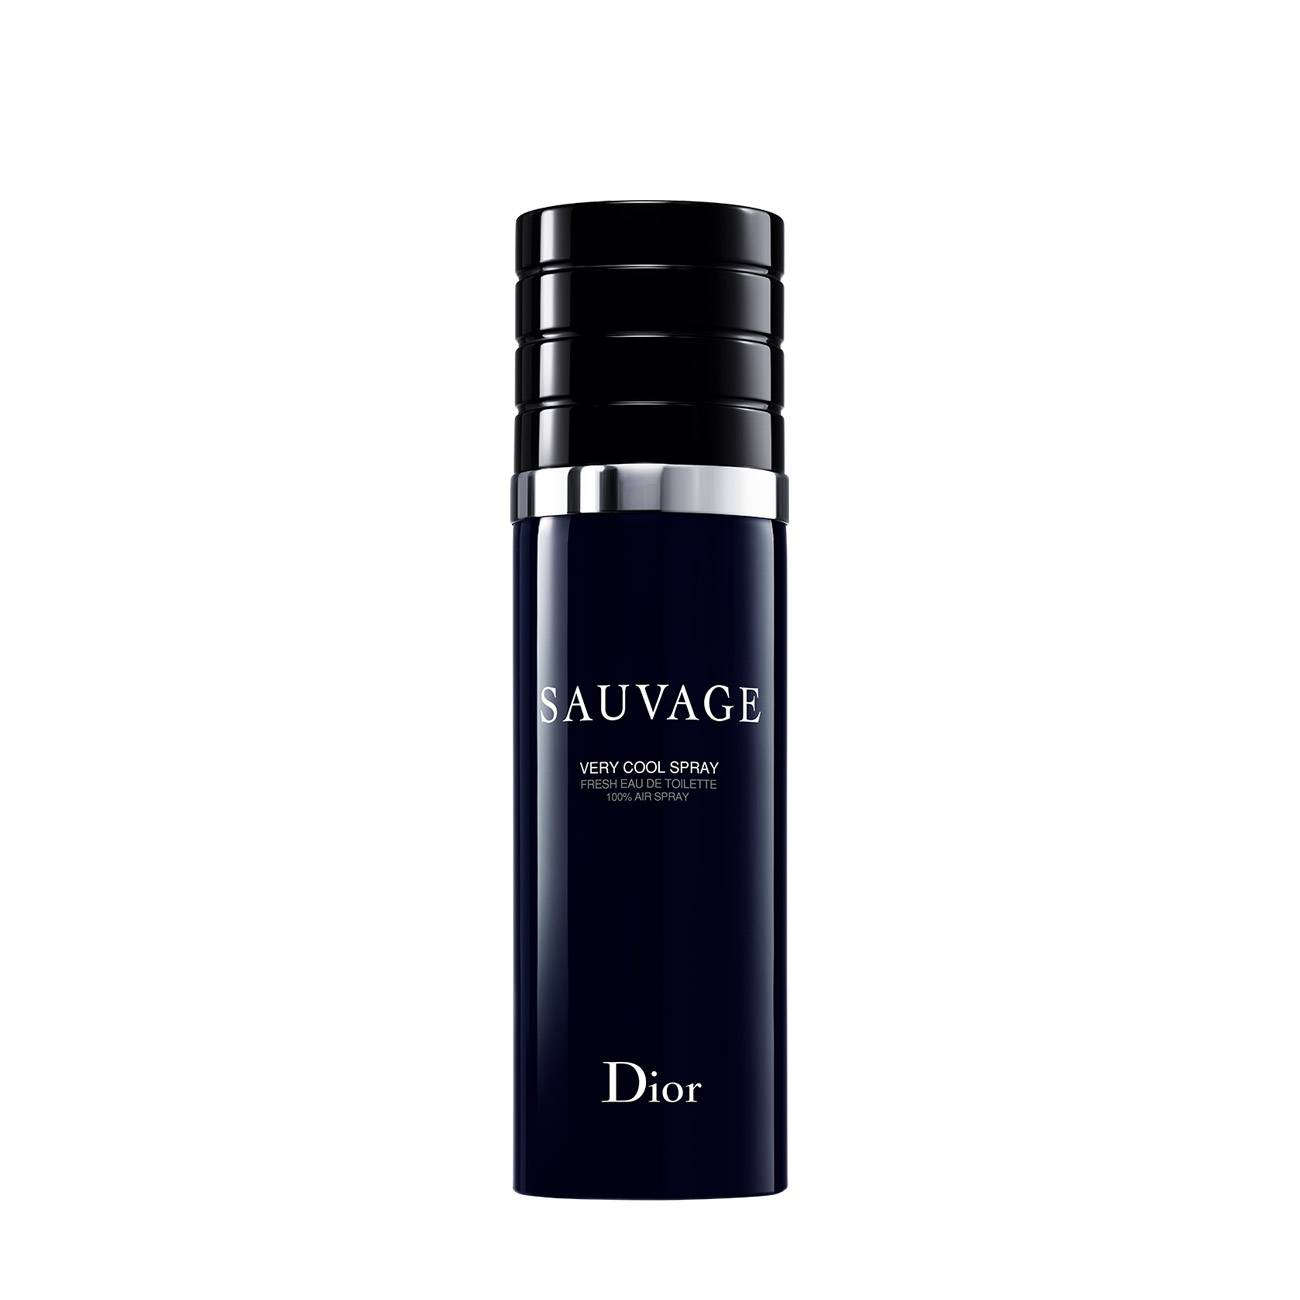 SAUVAGE VERY COOL SPRAY 100ml